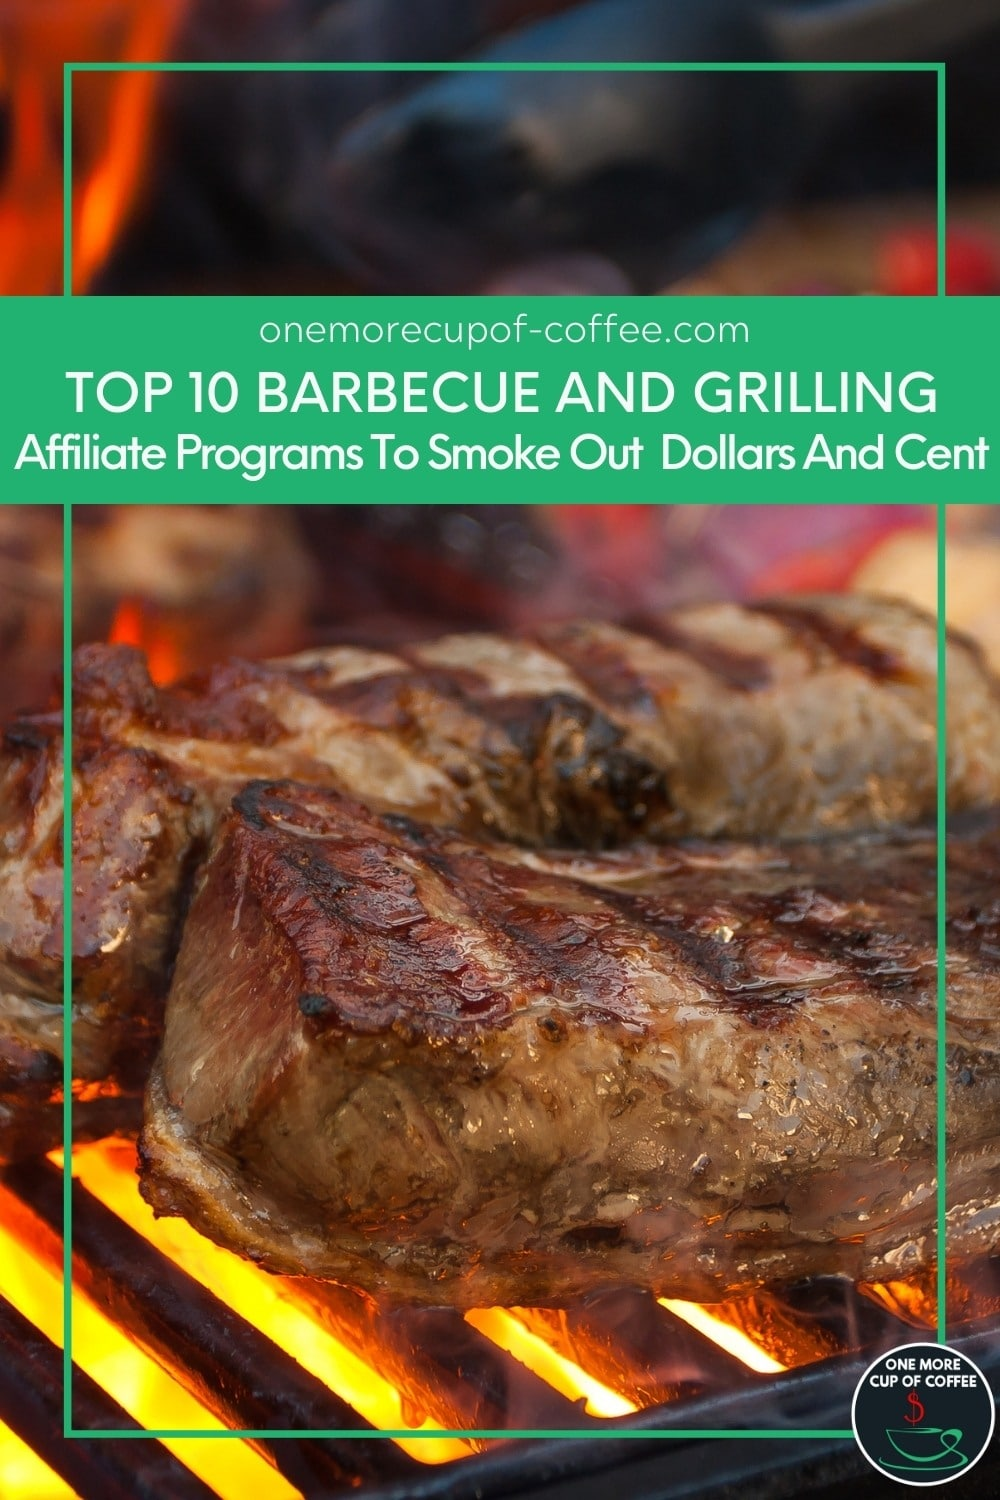 """closeup image of meat on barbecue grill, with text overlay in green banner """"Top 10 Barbecue and Grilling Affiliate Programs To Smoke Out Dollars And Cents"""""""